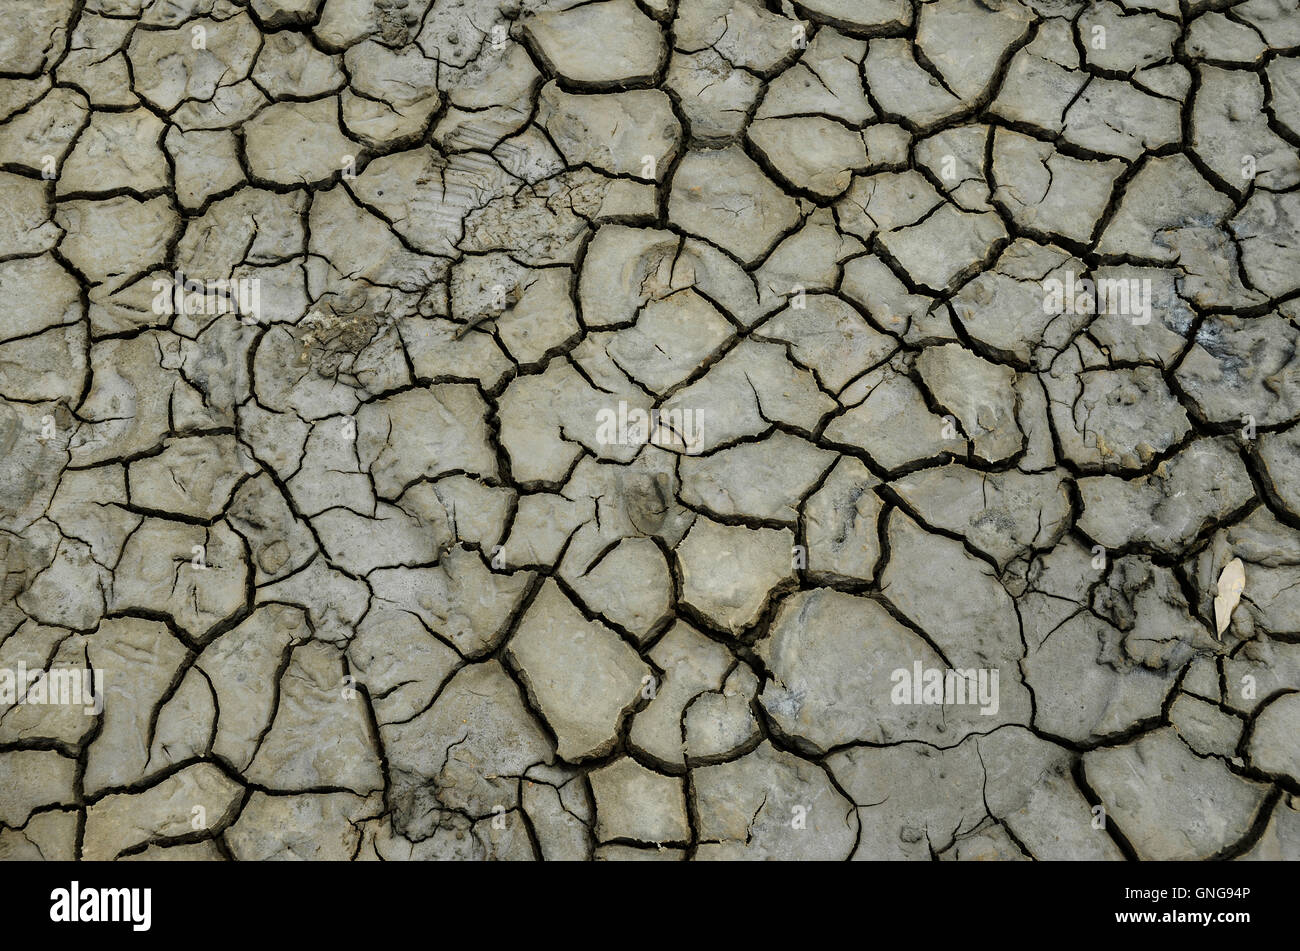 Close up of pattern of Dry mud for texture or background - Stock Image